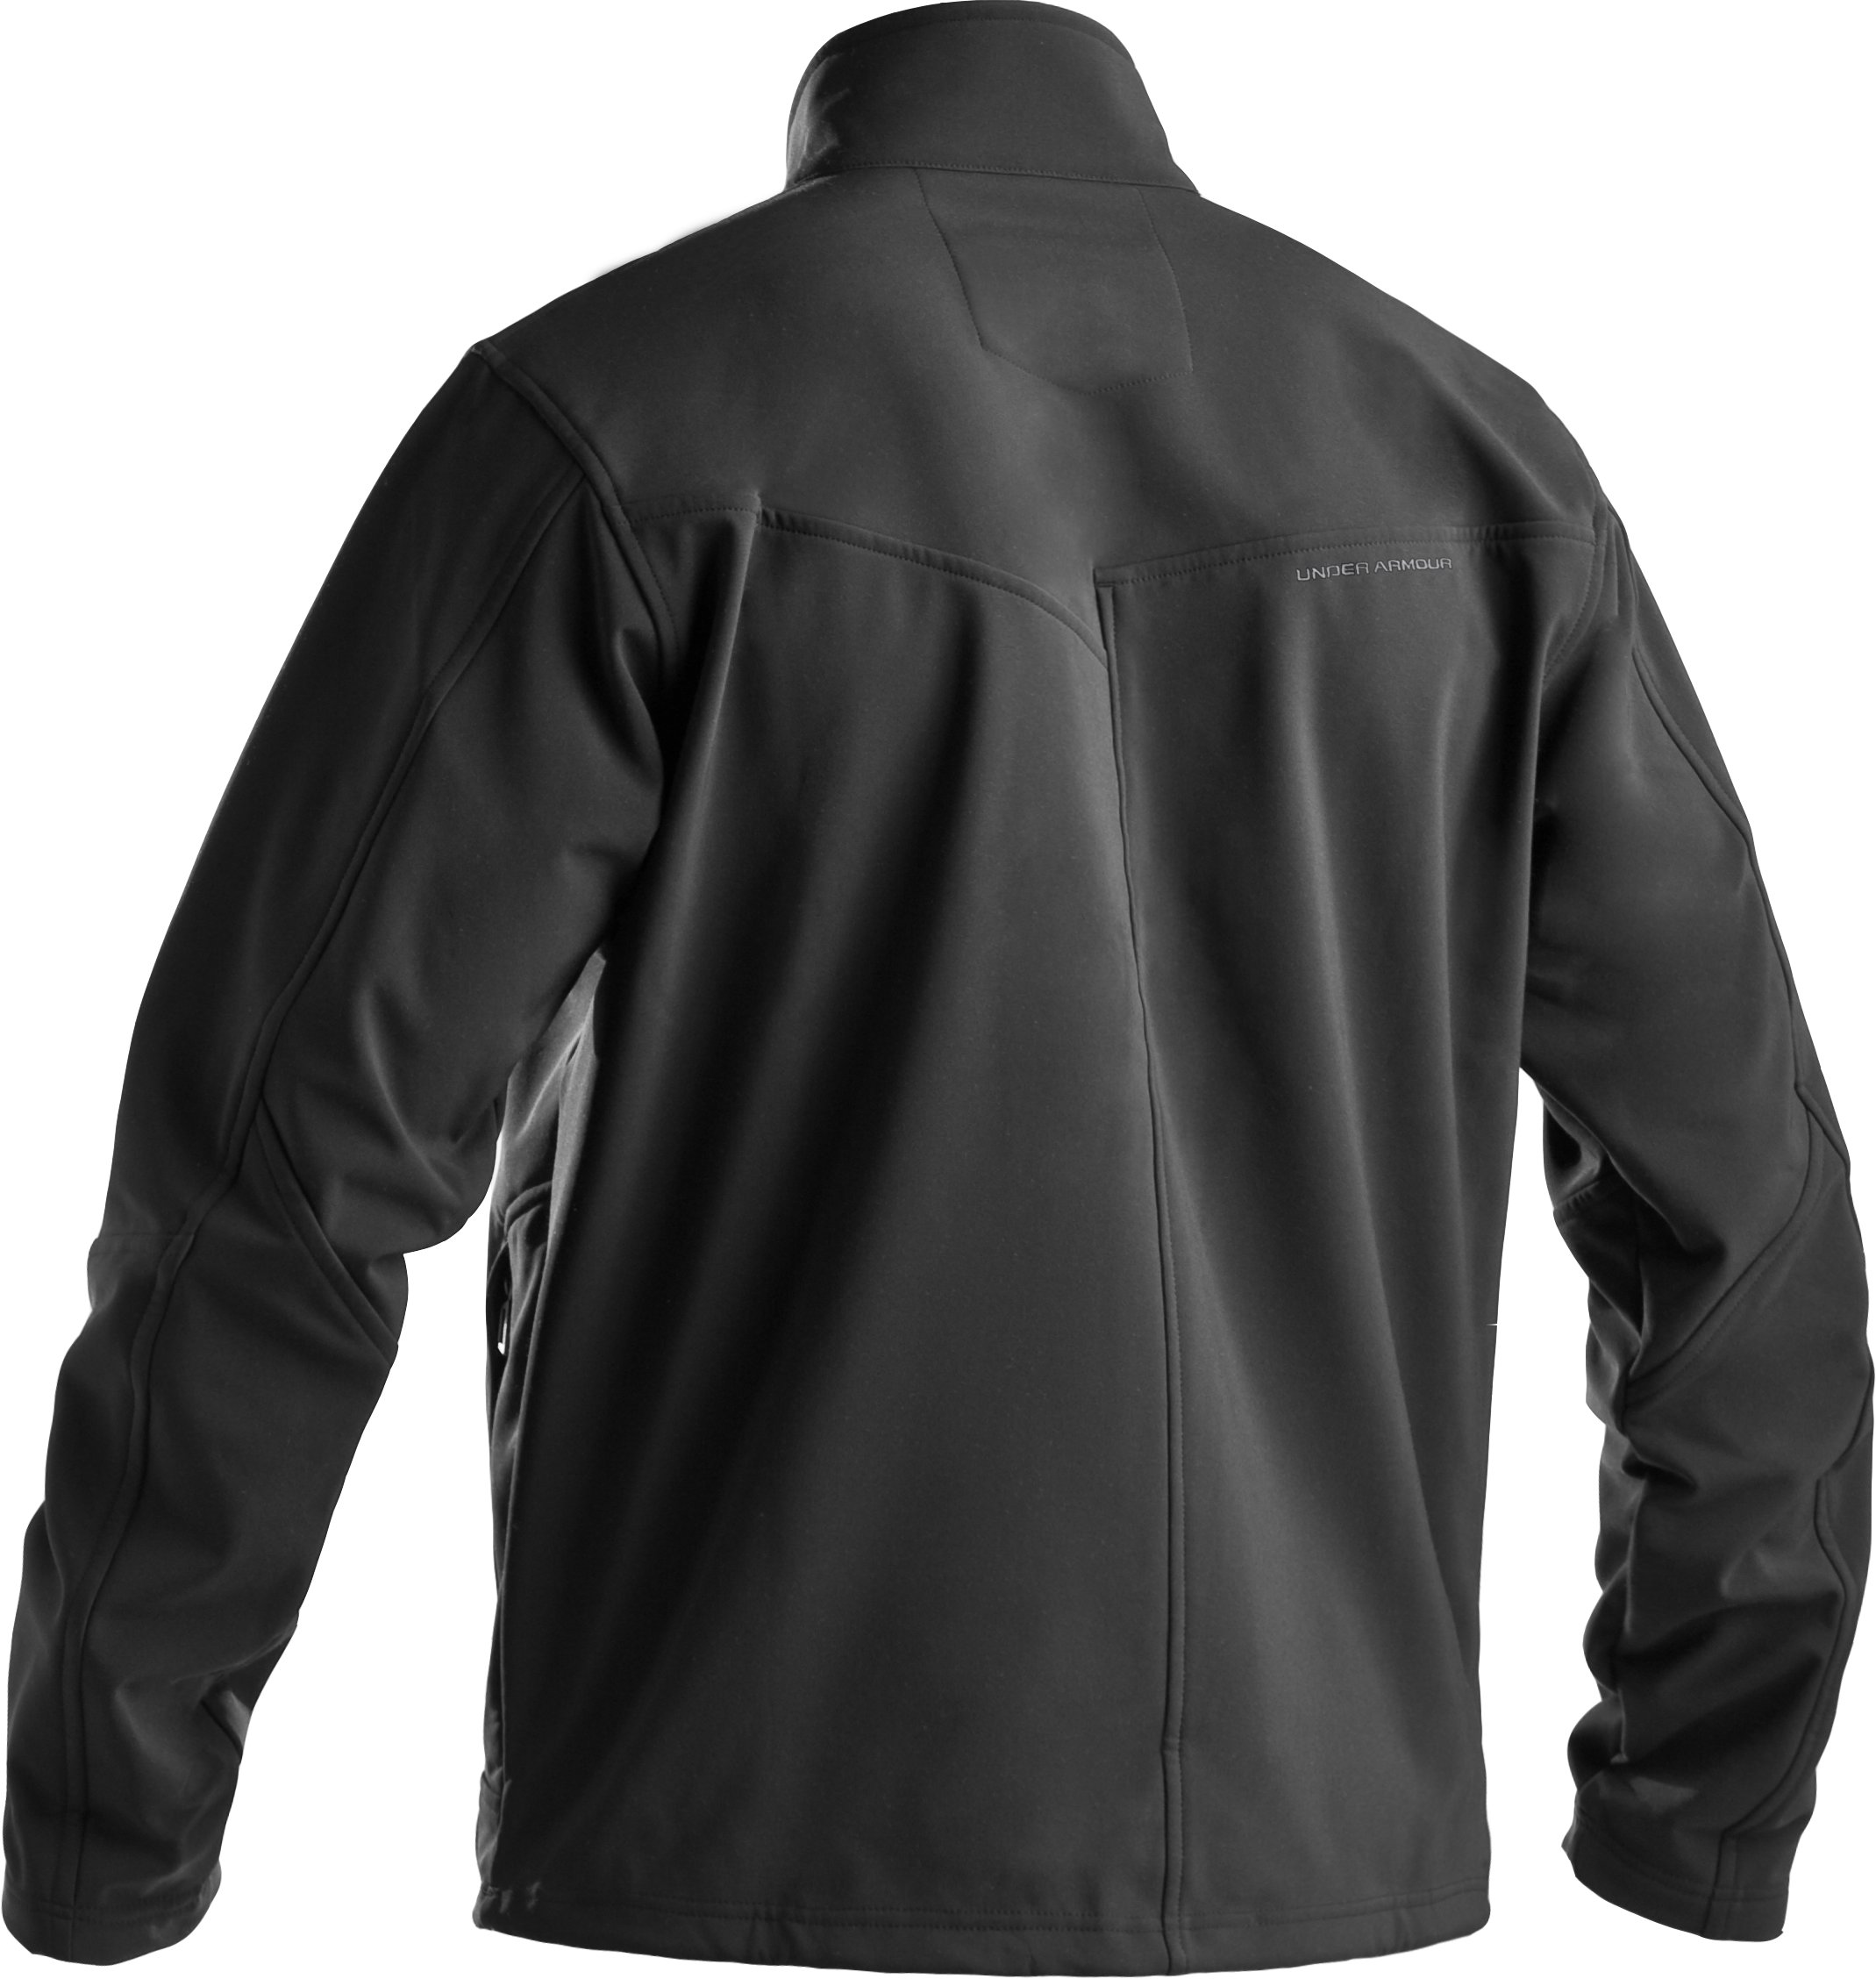 Men's WWP Jacket, Black